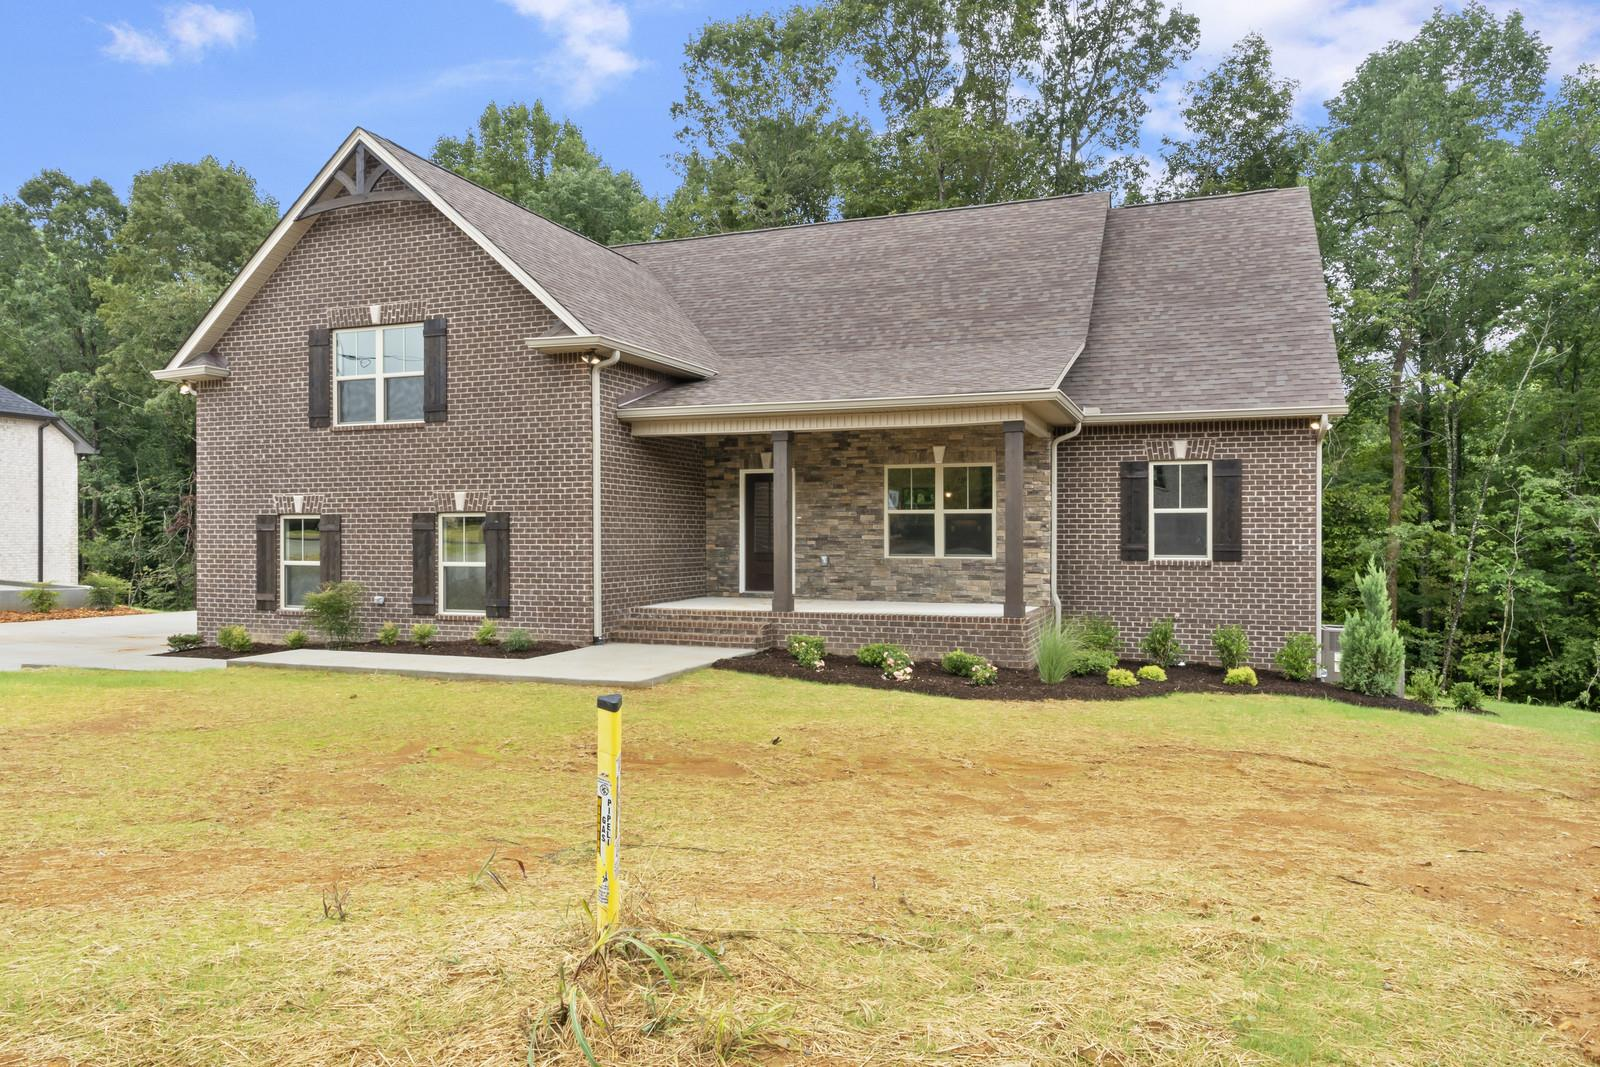 $369,900 - 3Br/2Ba -  for Sale in Westbrook Sec 6, Greenbrier